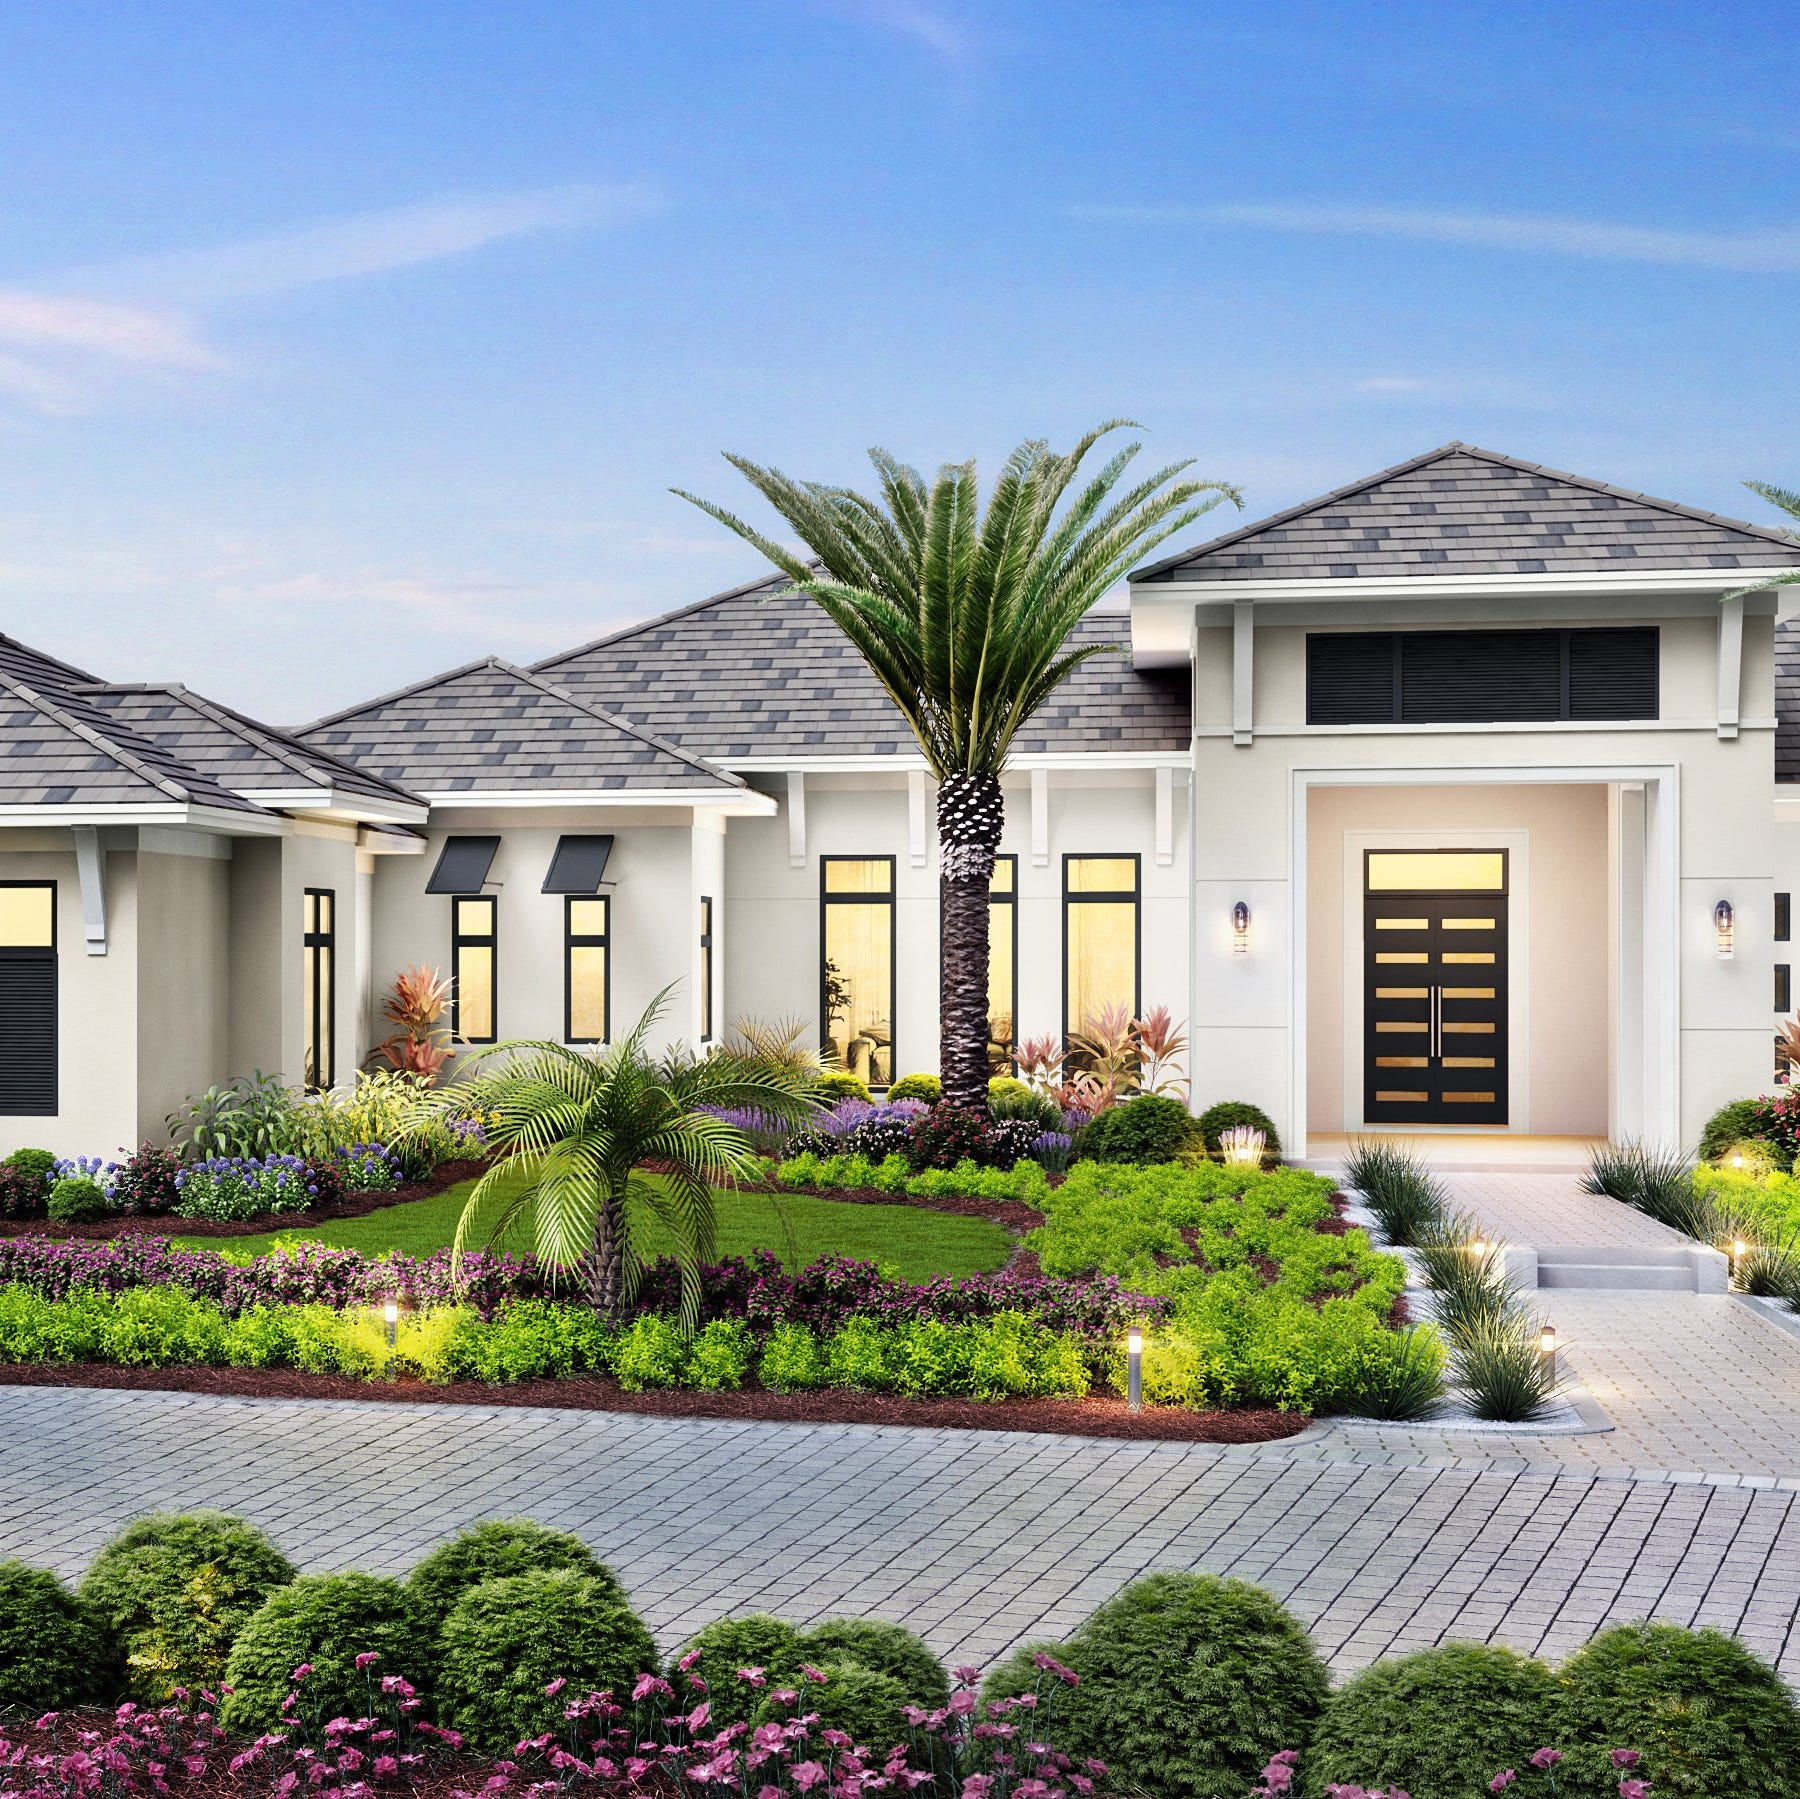 Theory Design completes designs for two models at Quail West